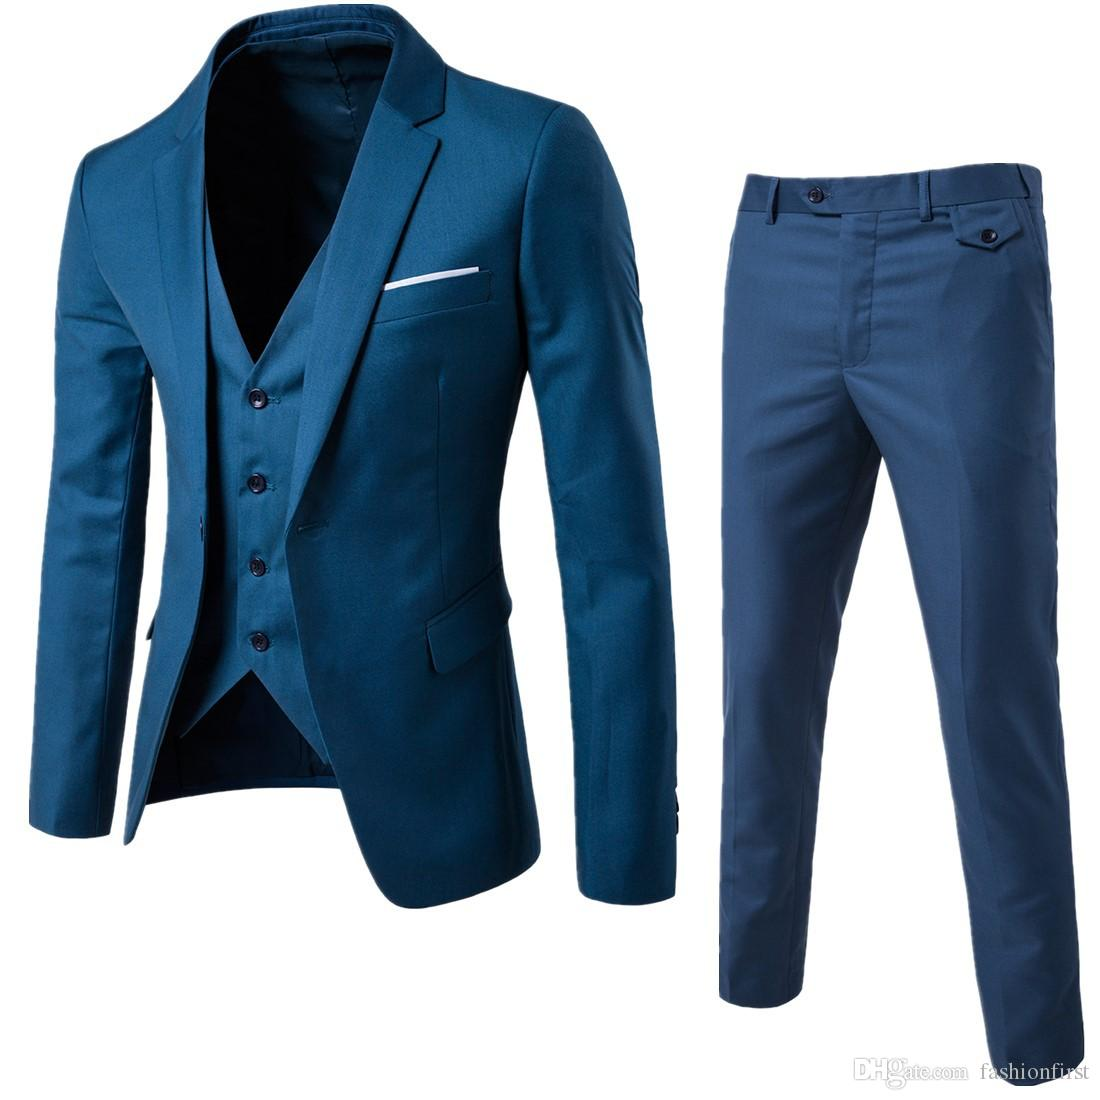 Spring 2018 high quality business casual suit three piece suit for the groom groomsman wedding wedding suits for men